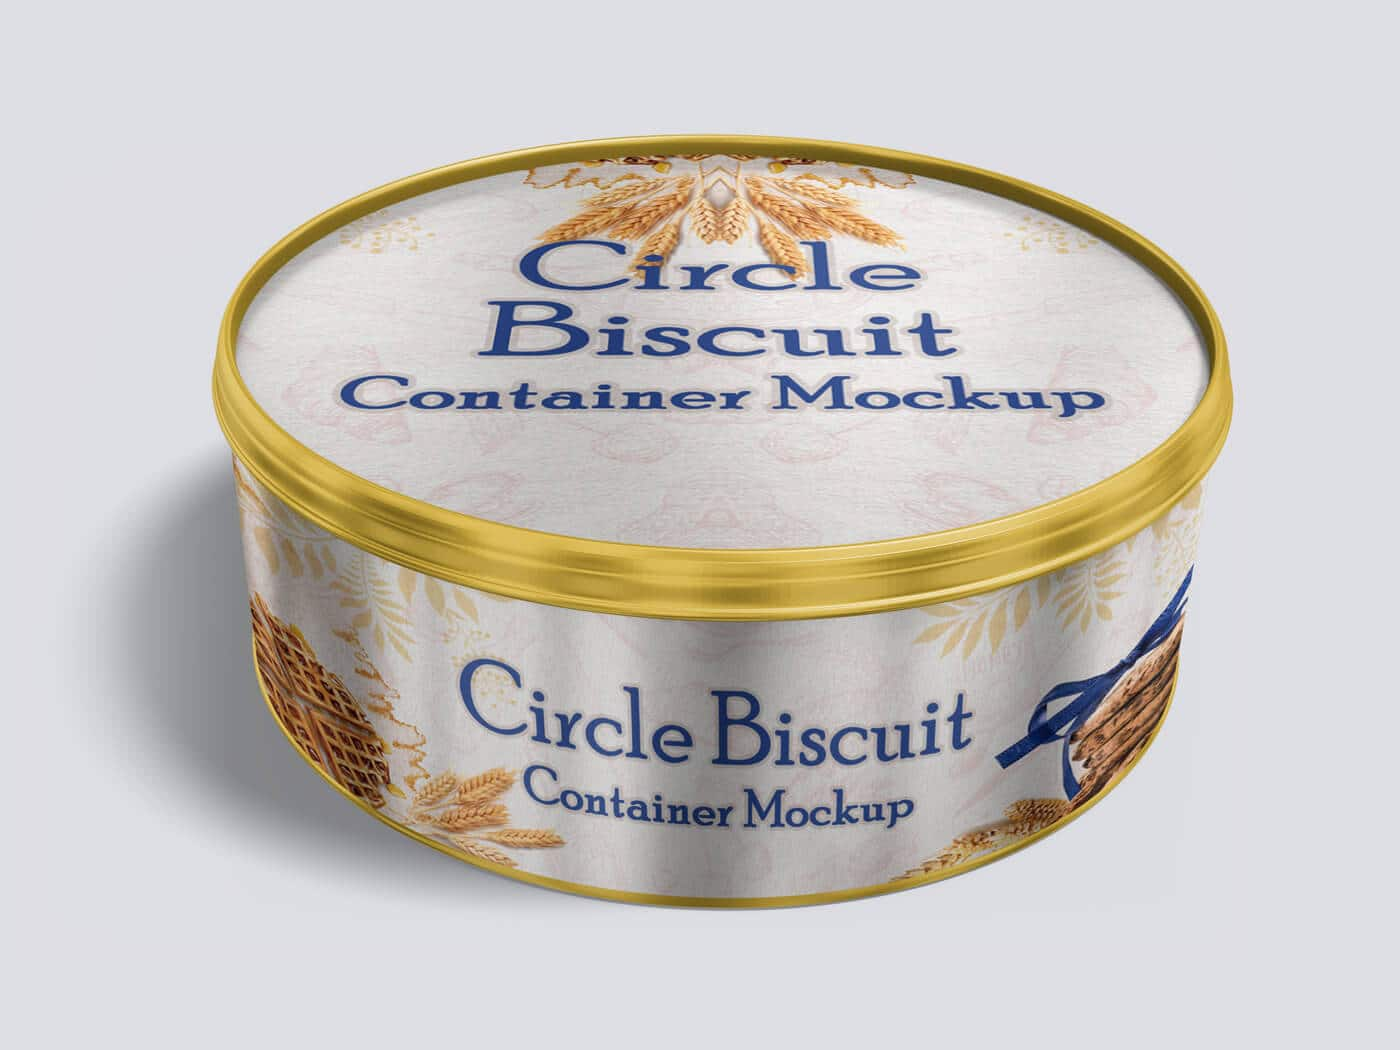 Circle Biscuit and Cookies Tin Container Mockup 01